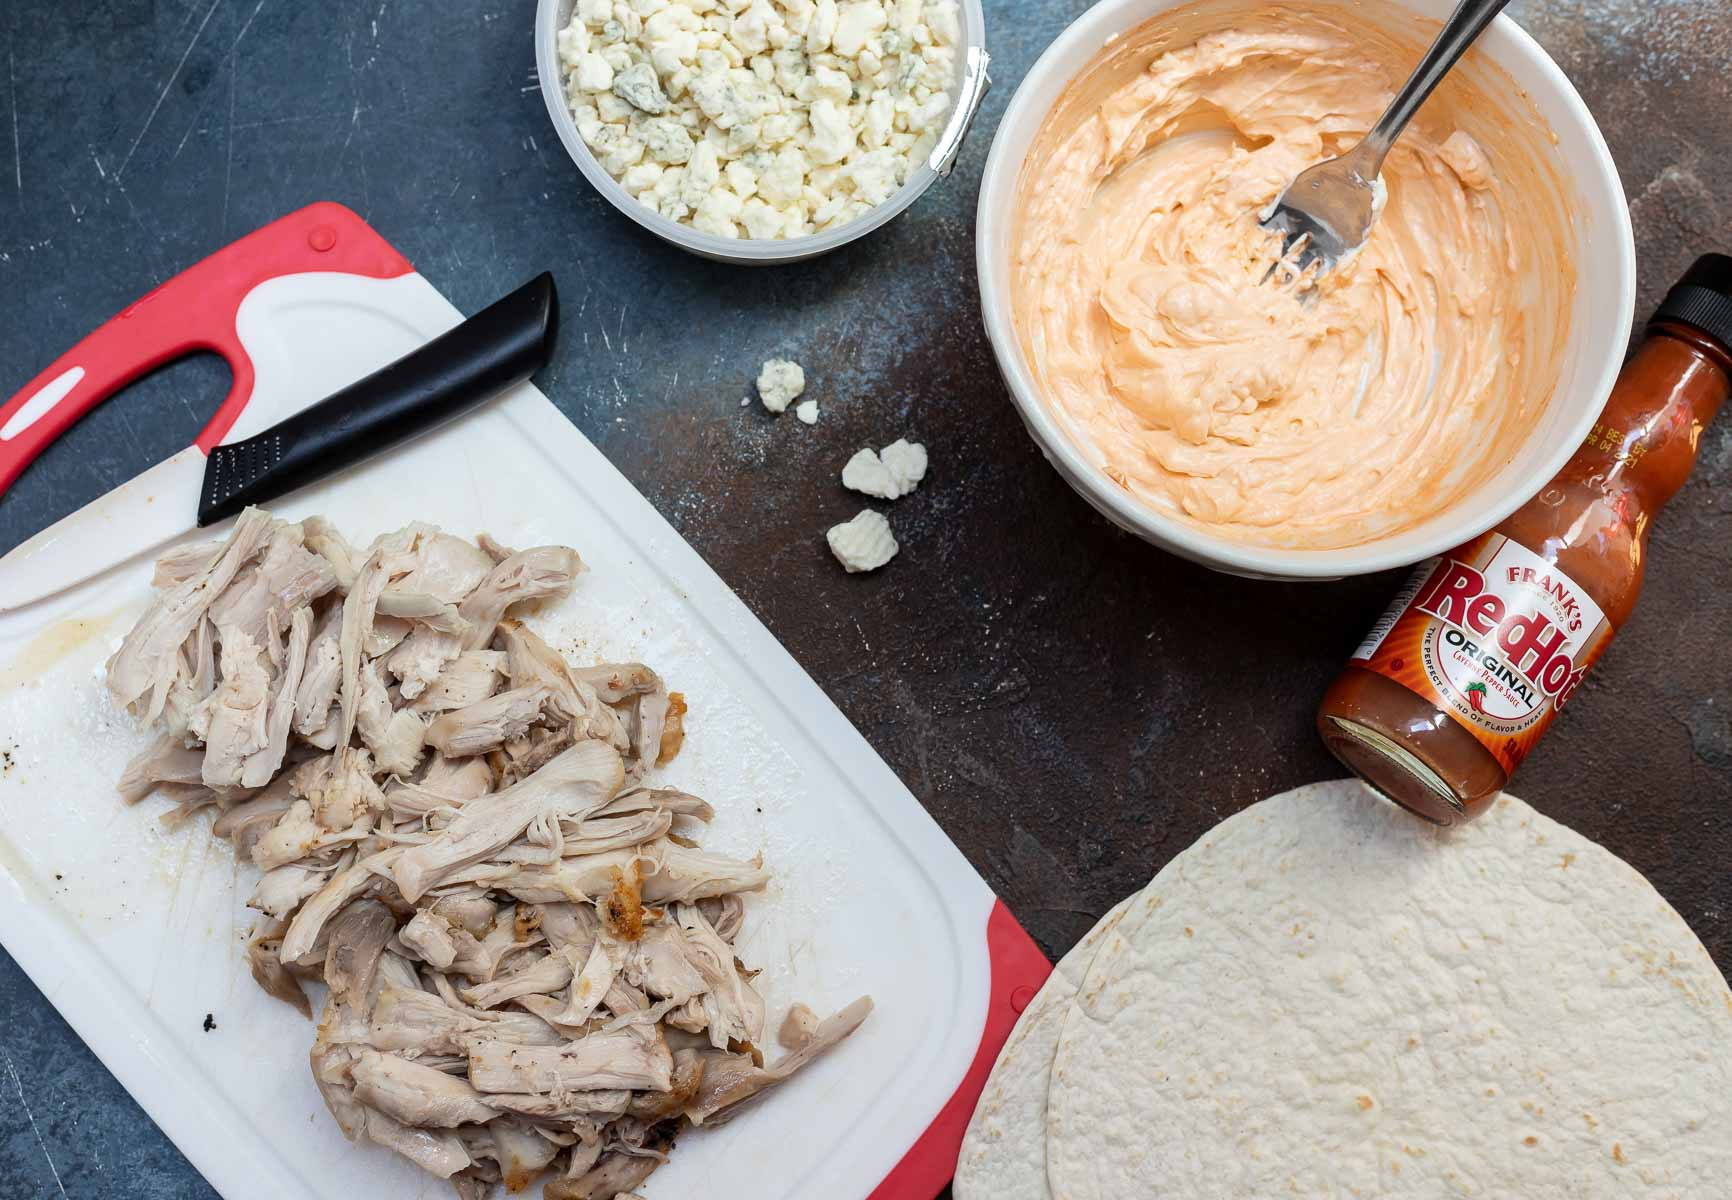 shredded chicken, blue cheese crumbles, tortillas and buffalo cream cheese mixture